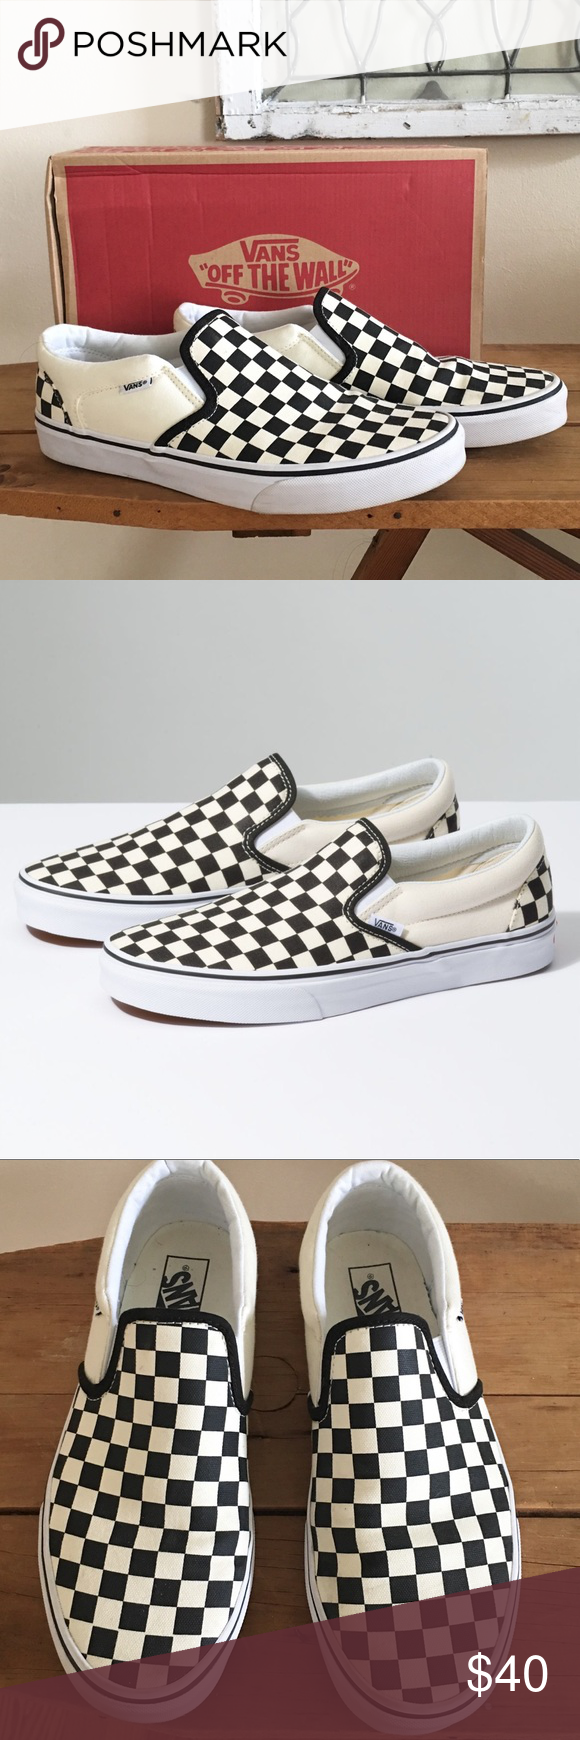 black and white checkered vans size 3